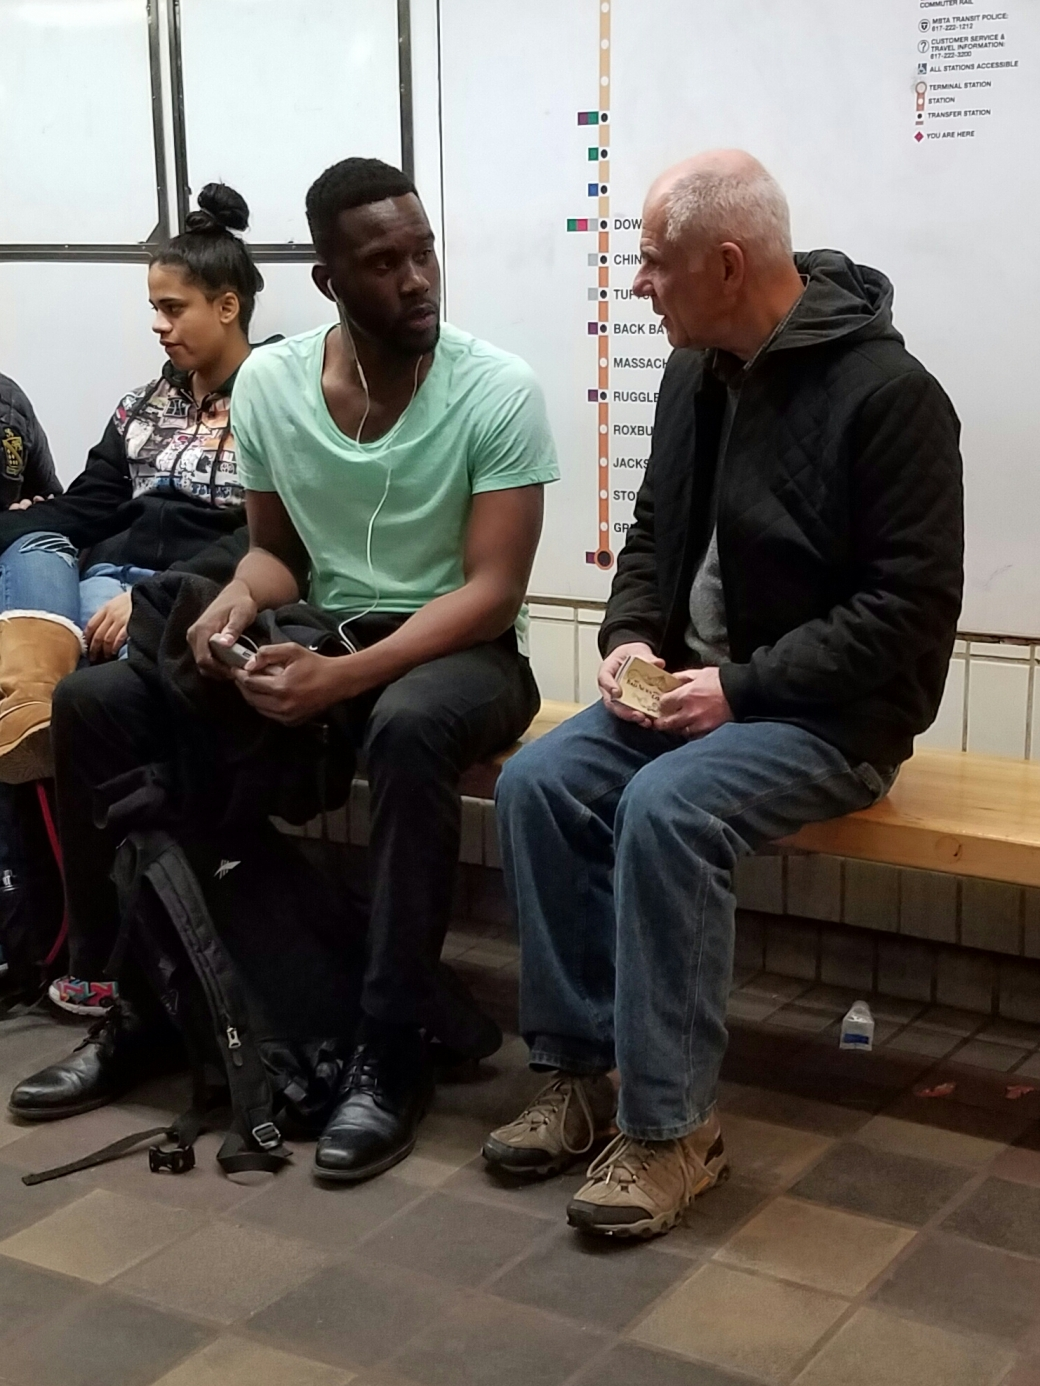 This is Kinsen, a young man who was very interested in talking with Eric about eternal matters. After Eric brought Kinsen through the Law of God, Kinsen paused and said, 'I'm in a predicament.' What a response! We can't receive grace until we know we need it! Kinsen said, 'I don't have a good reason for why God should let me into Heaven.' Eric shared God's saving message with him, and pointed him to the Bible. It's awesome to see what kind of strangers God sends our way! Please pray for this polite and thoughtful young man.